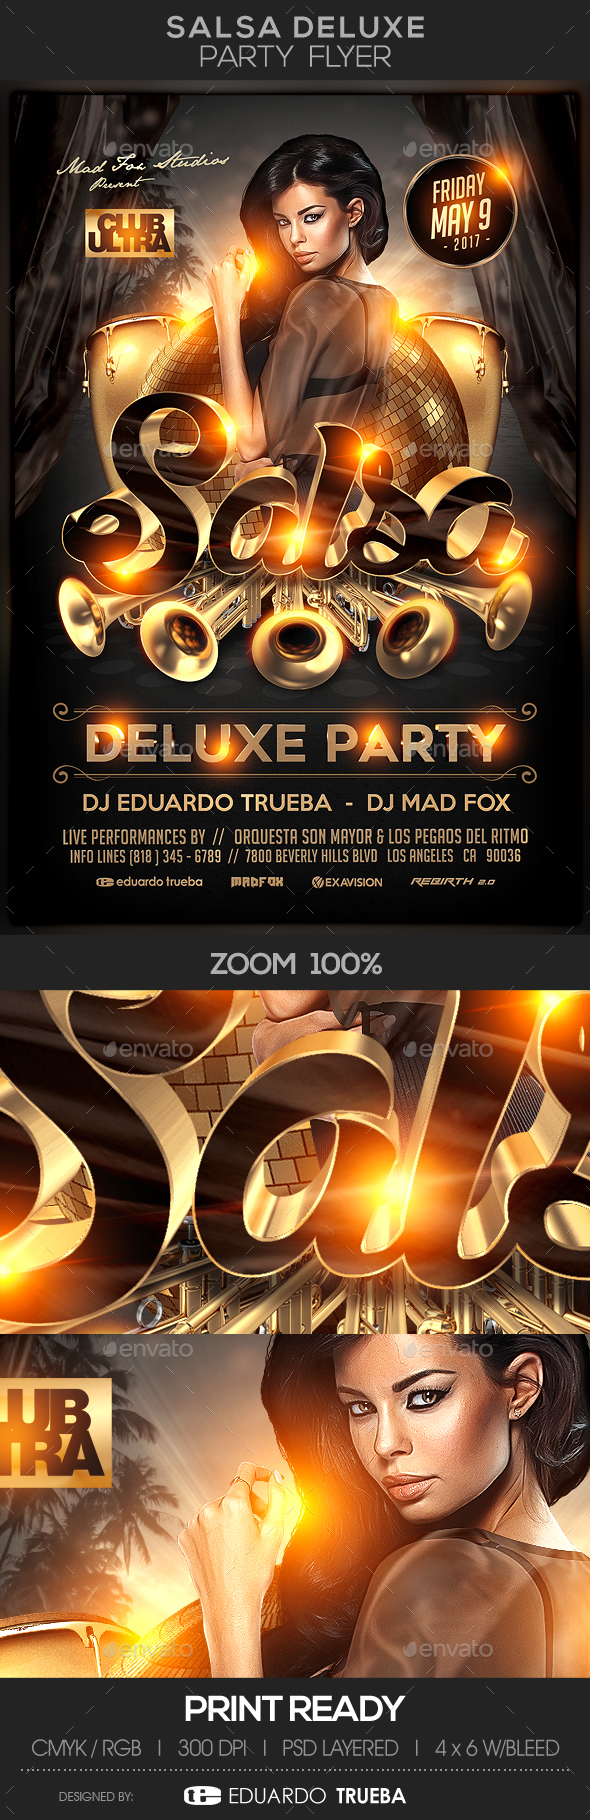 Salsa Deluxe Party Flyer - Clubs & Parties Events